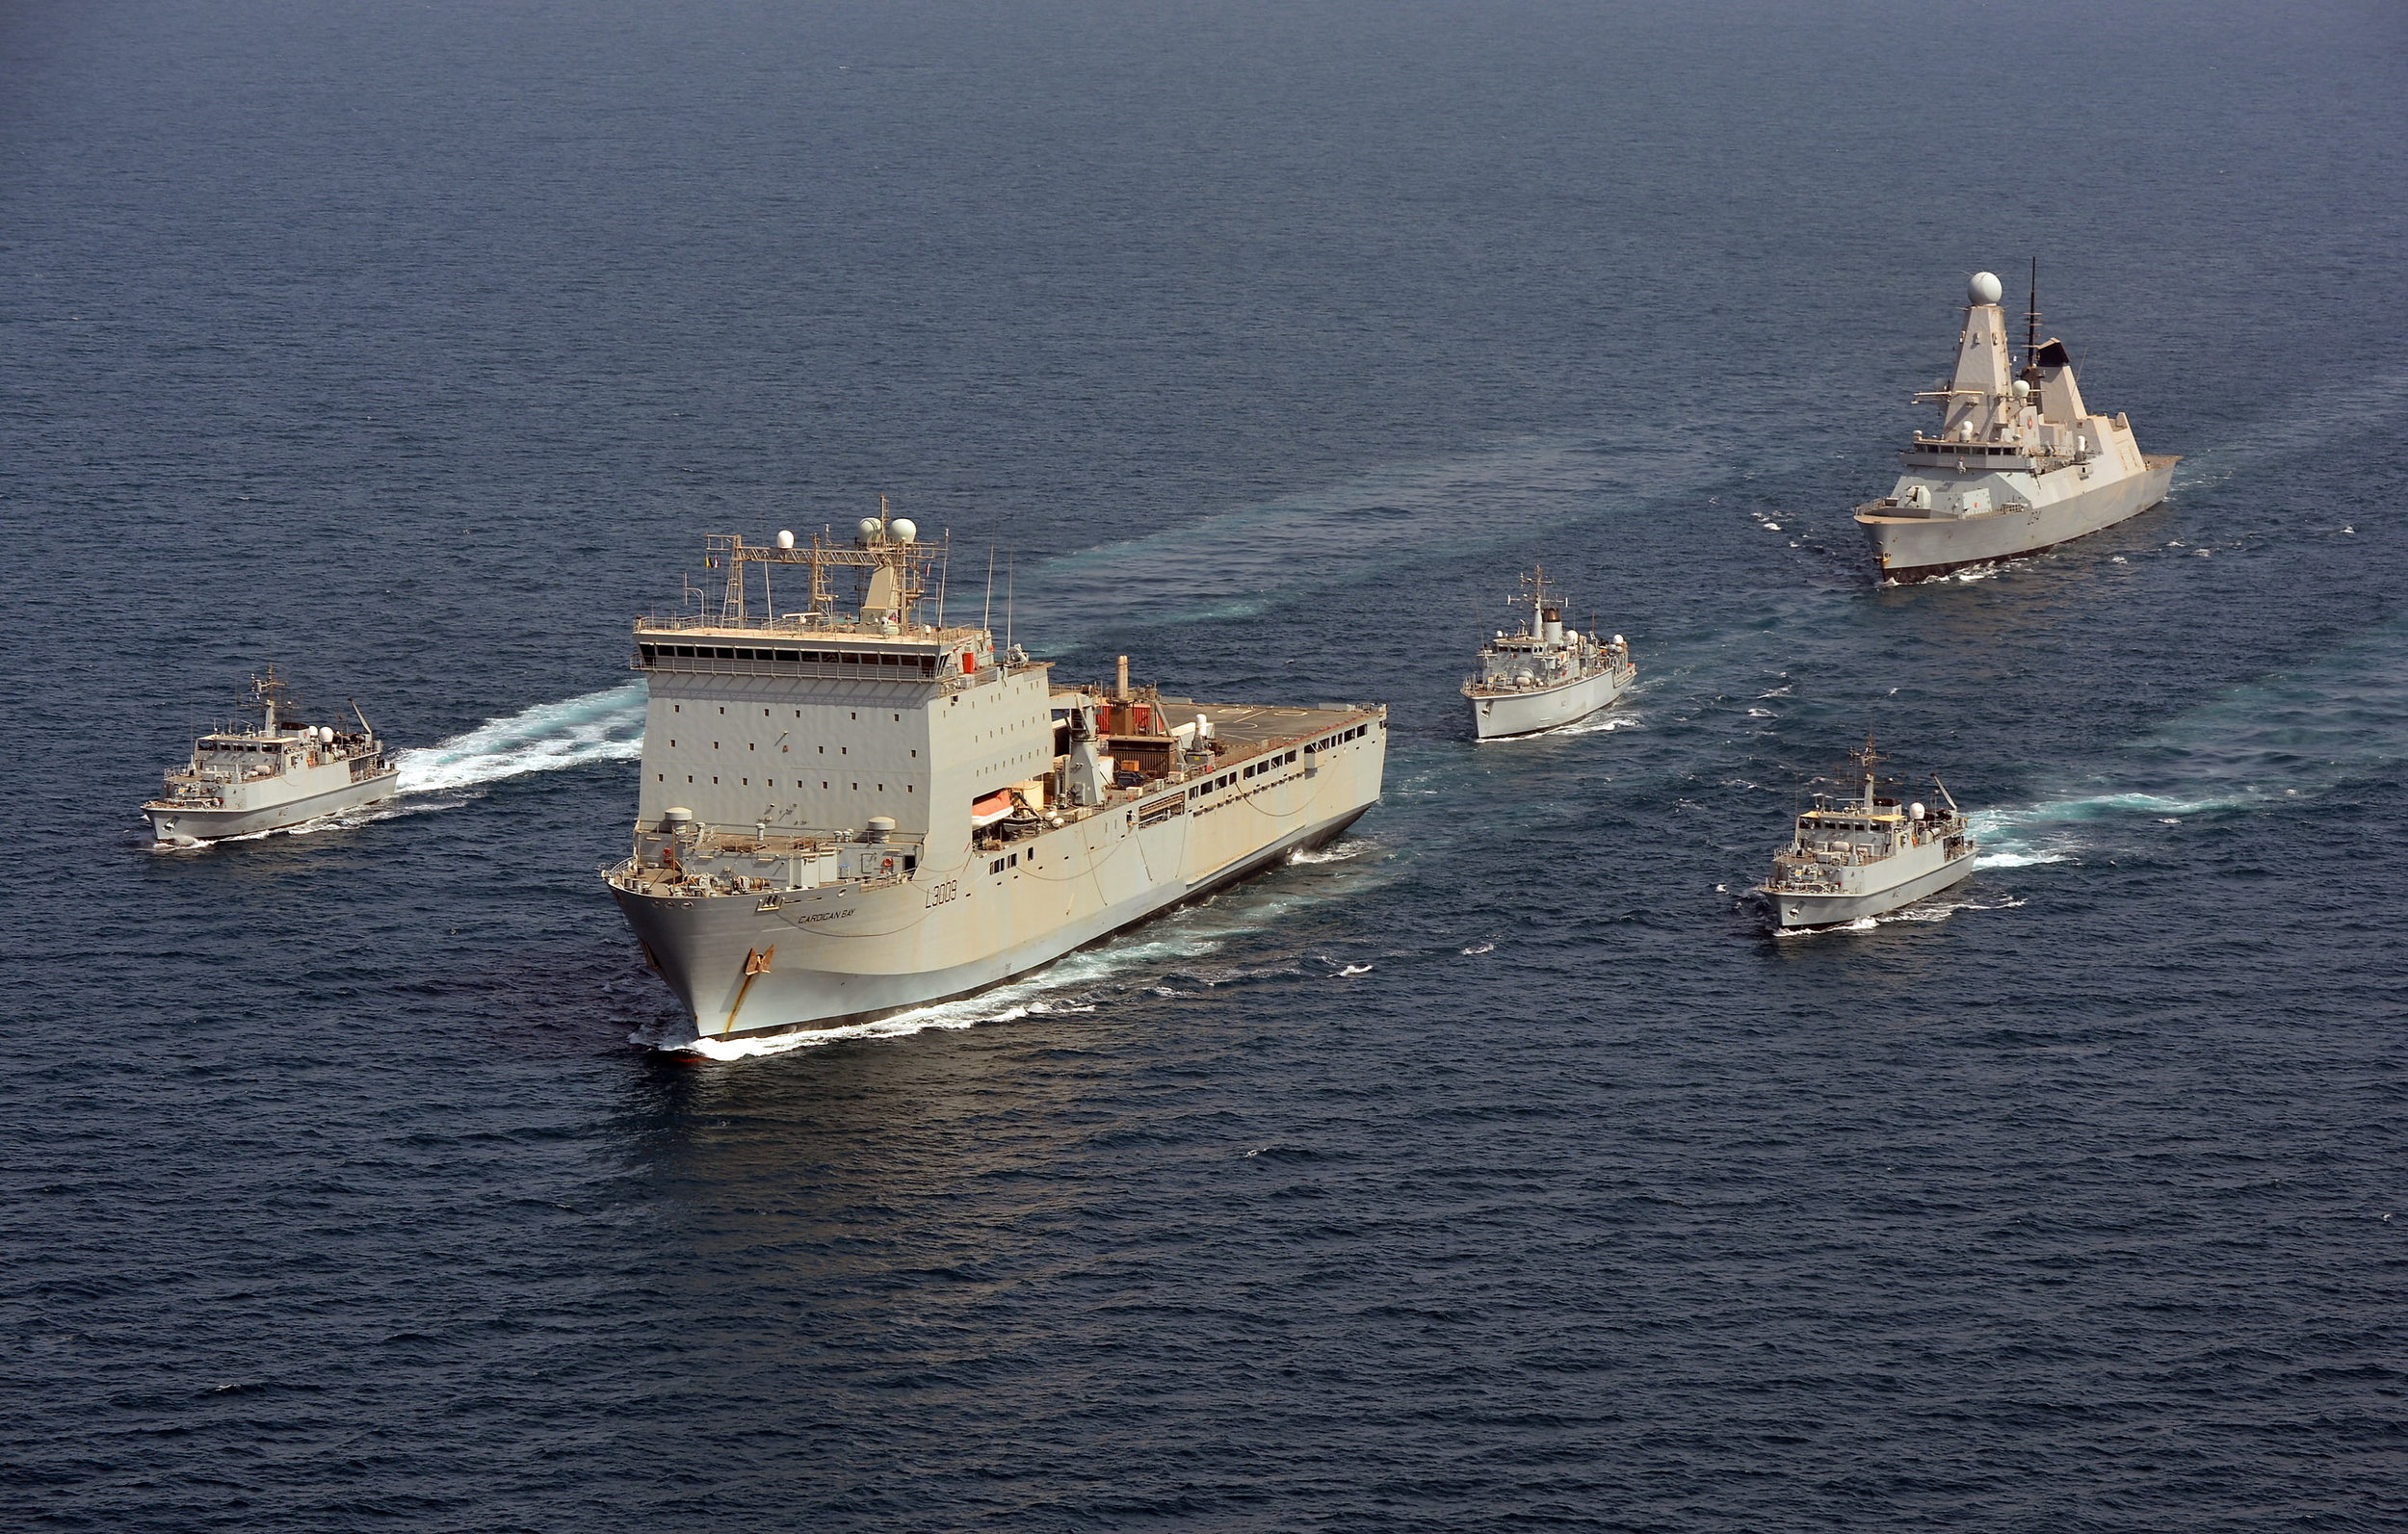 Royal Navy Ships In The Gulf.     Source http://www.defenceimagery.mod.uk/fotoweb/archives/5042-Downloadable%20Stock%20Images/Archive/Royal%20Navy/45154/45154692.jpg